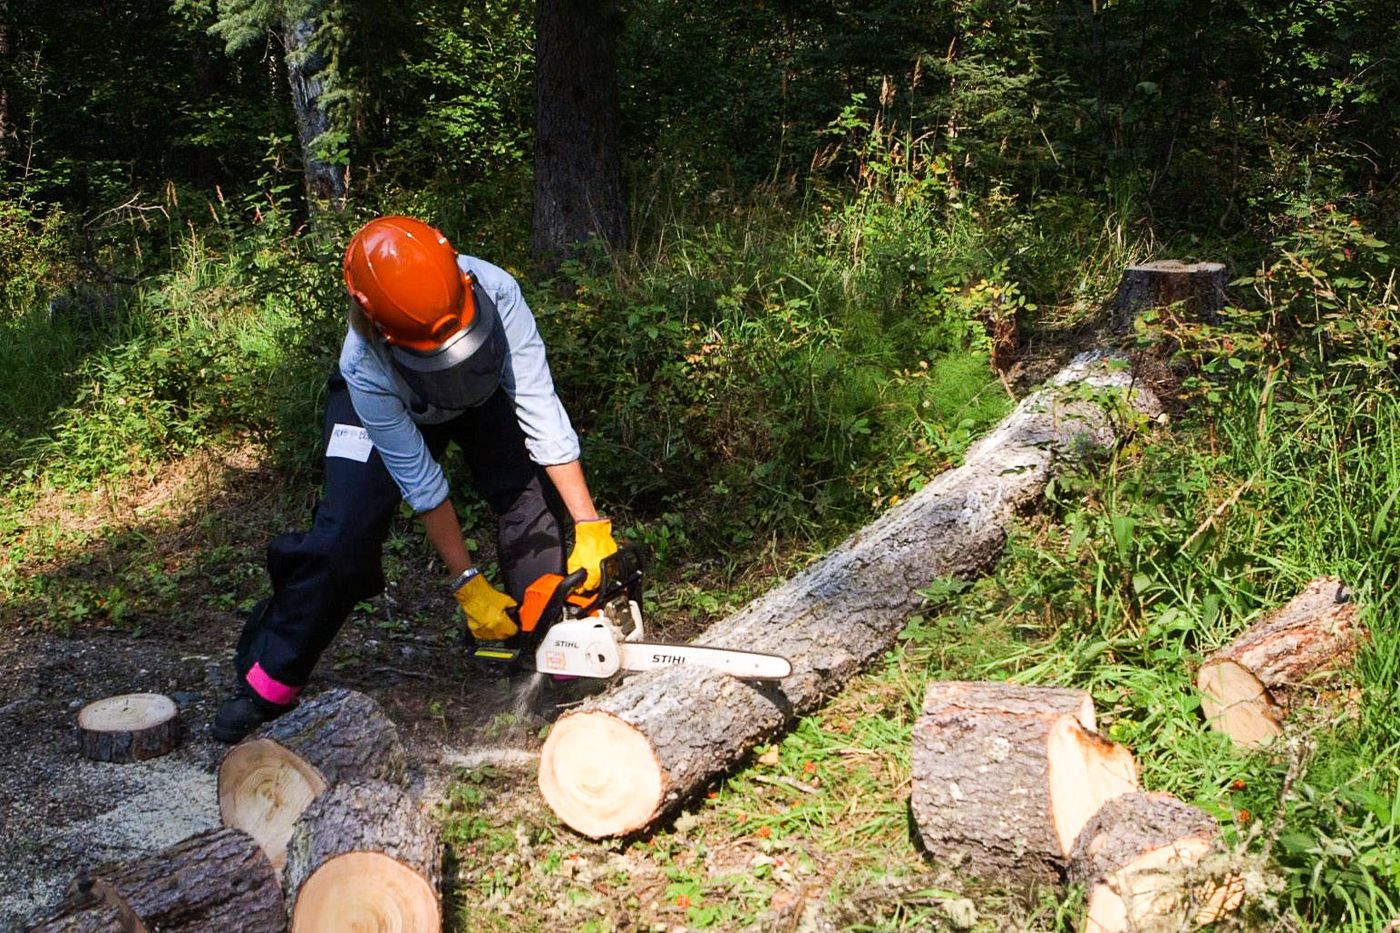 A Becoming an Outdoors Woman student uses a chainsaw for the first time Aug. 8, 2015, during an immersion weekend at Lost Lake Boyscout Camp. Becoming an Outdoors Woman is an introductory skills program run by Alaska Fish and Game to teach woman and men hunting, fishing and other outdoor sports in a supportive environment.